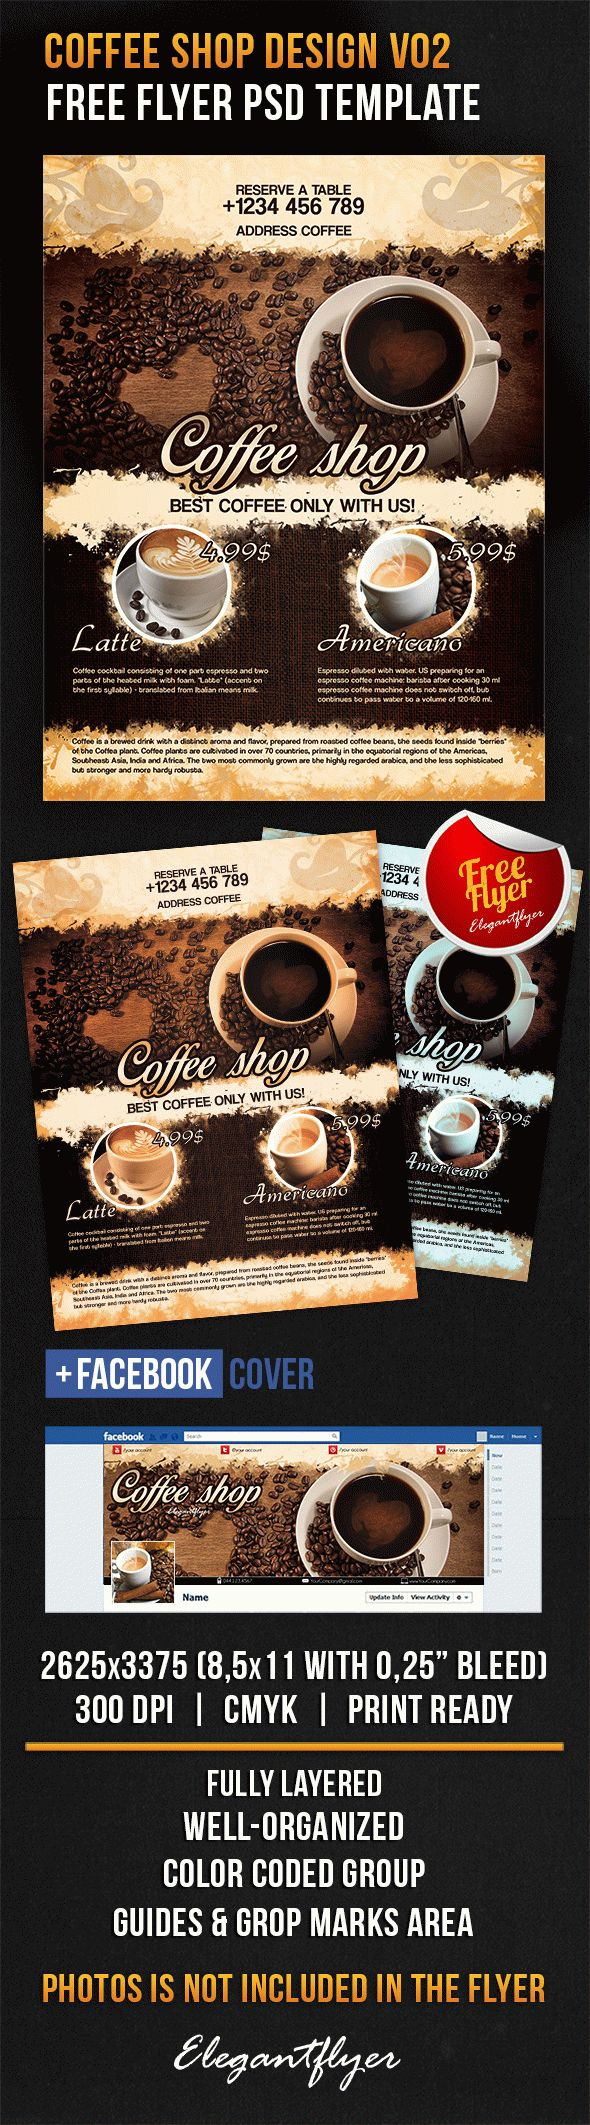 Coffee Shop Design V02 – Free Flyer PSD Template + Facebook Cover